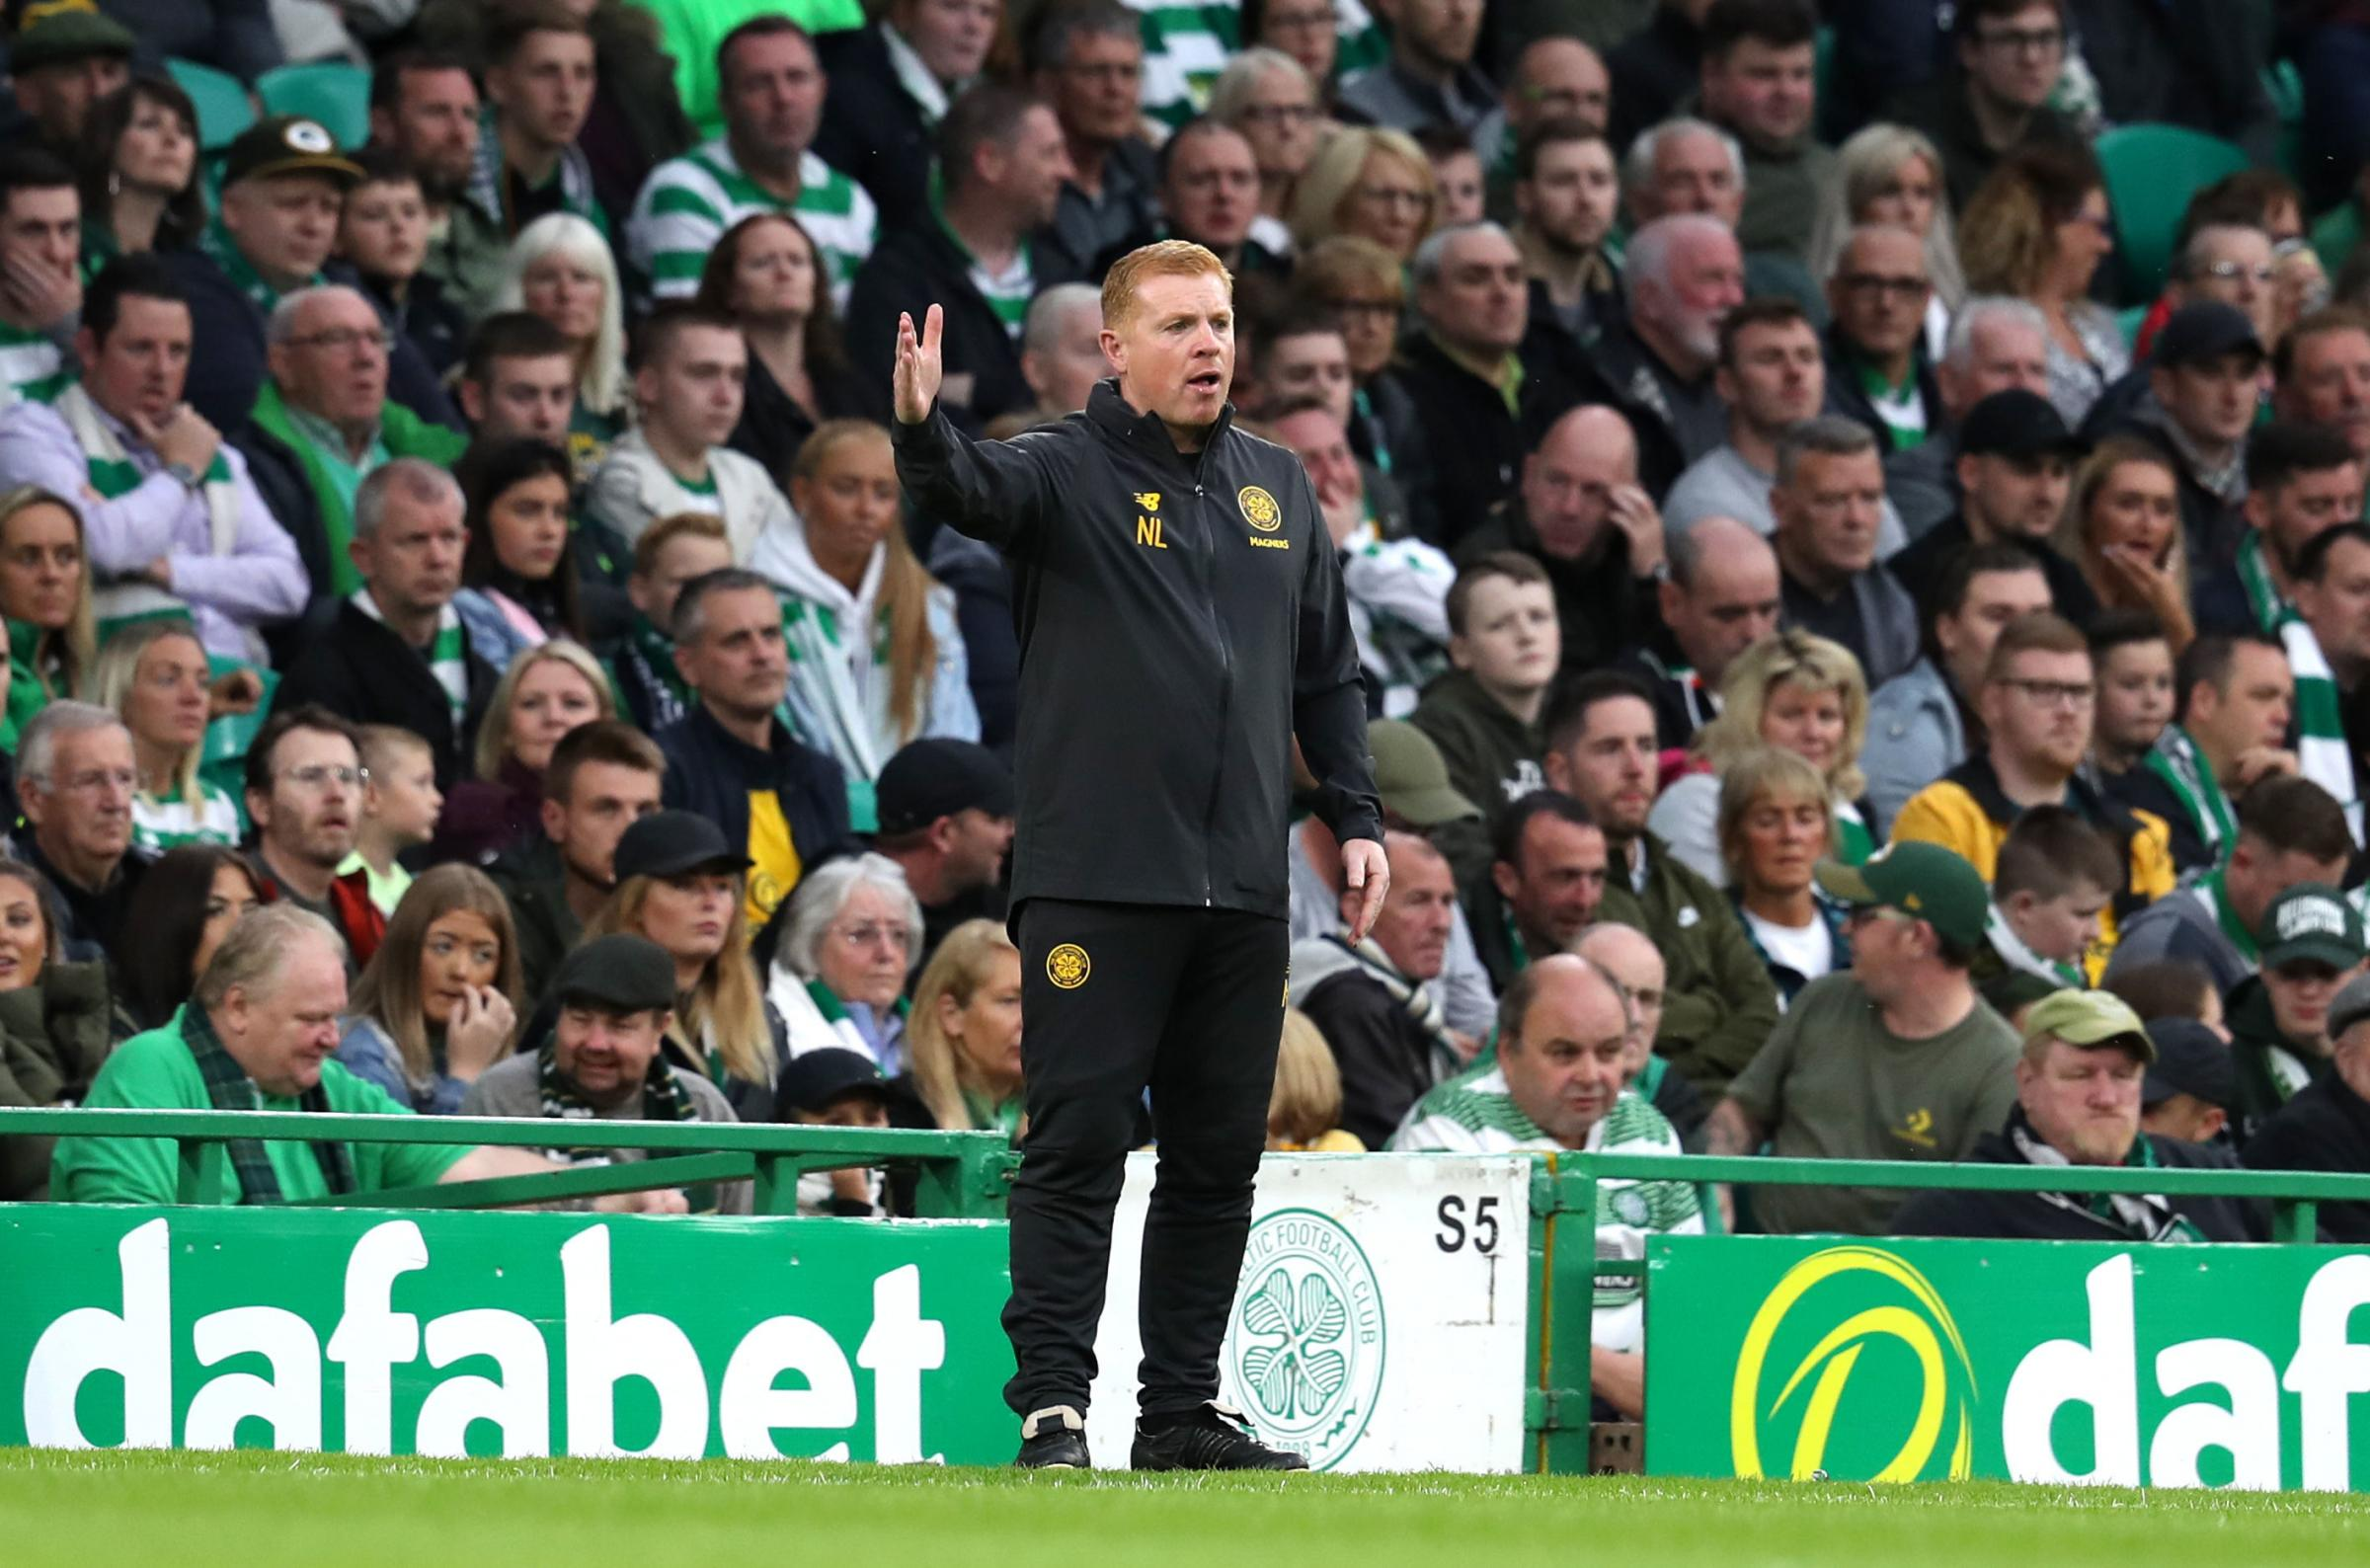 CFR Cluj and Maccabi Tel Aviv: Celtic's potential opponents profiled